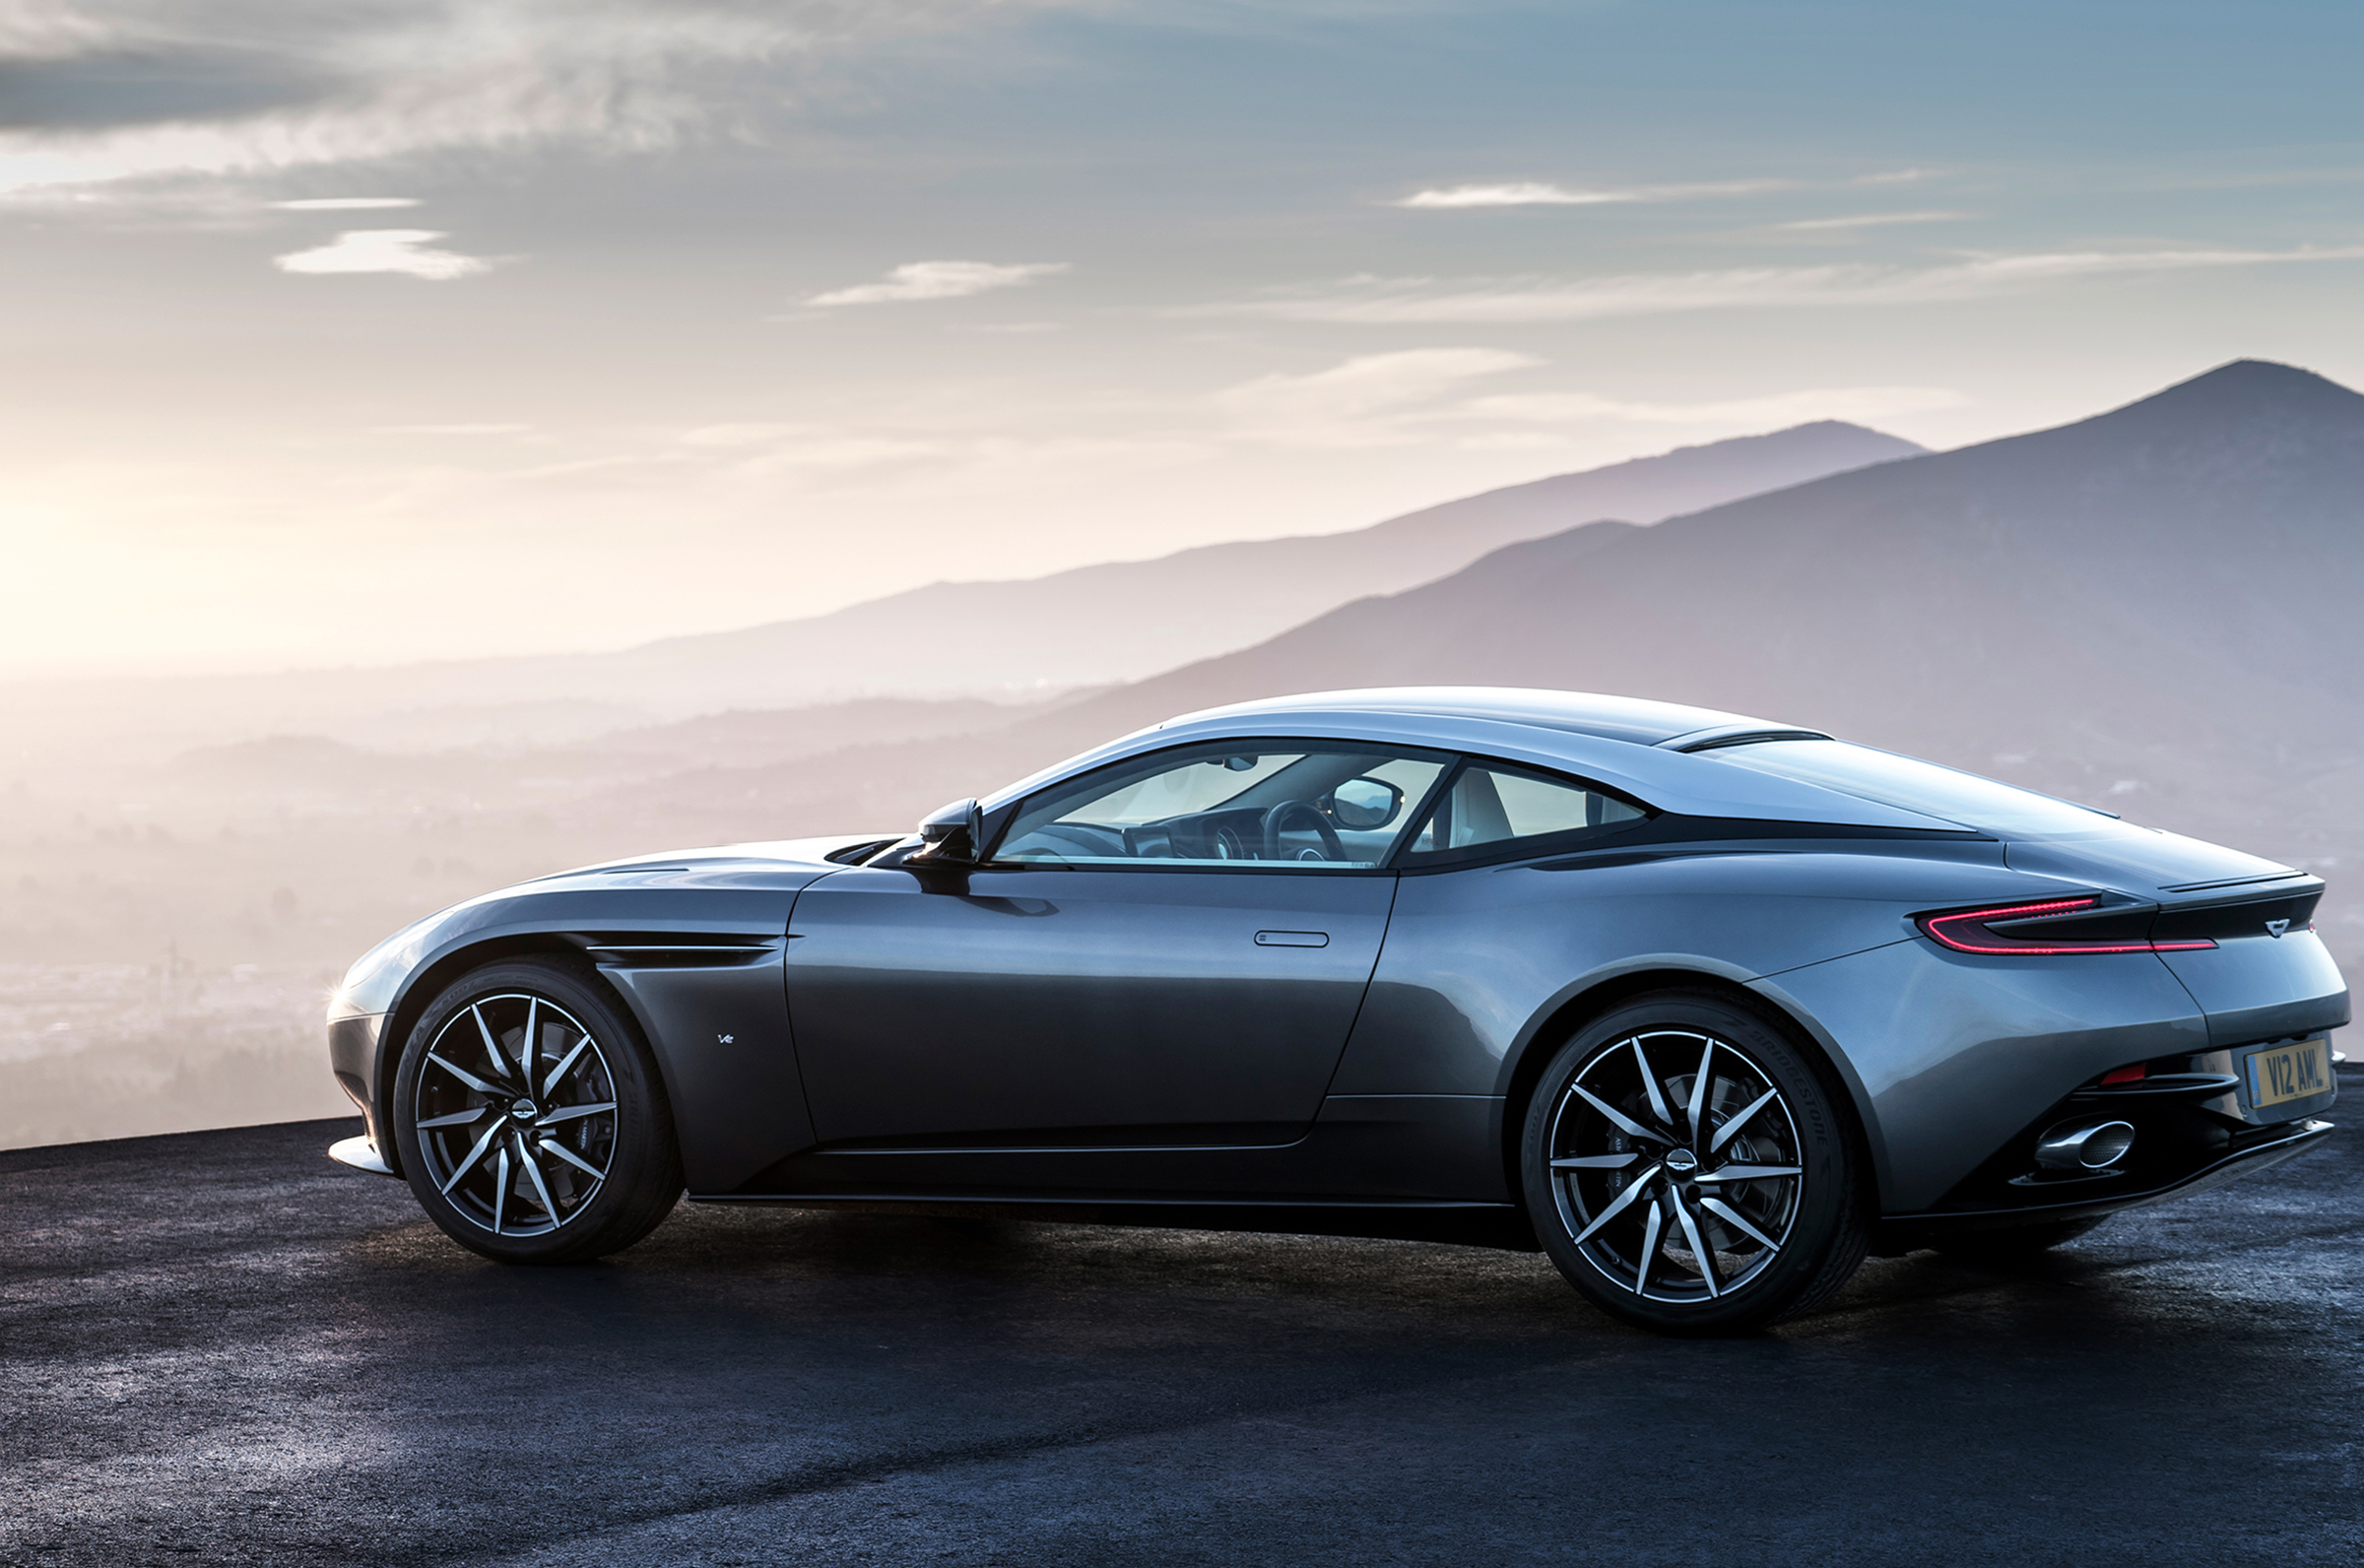 DB11. Classically Aston Martin